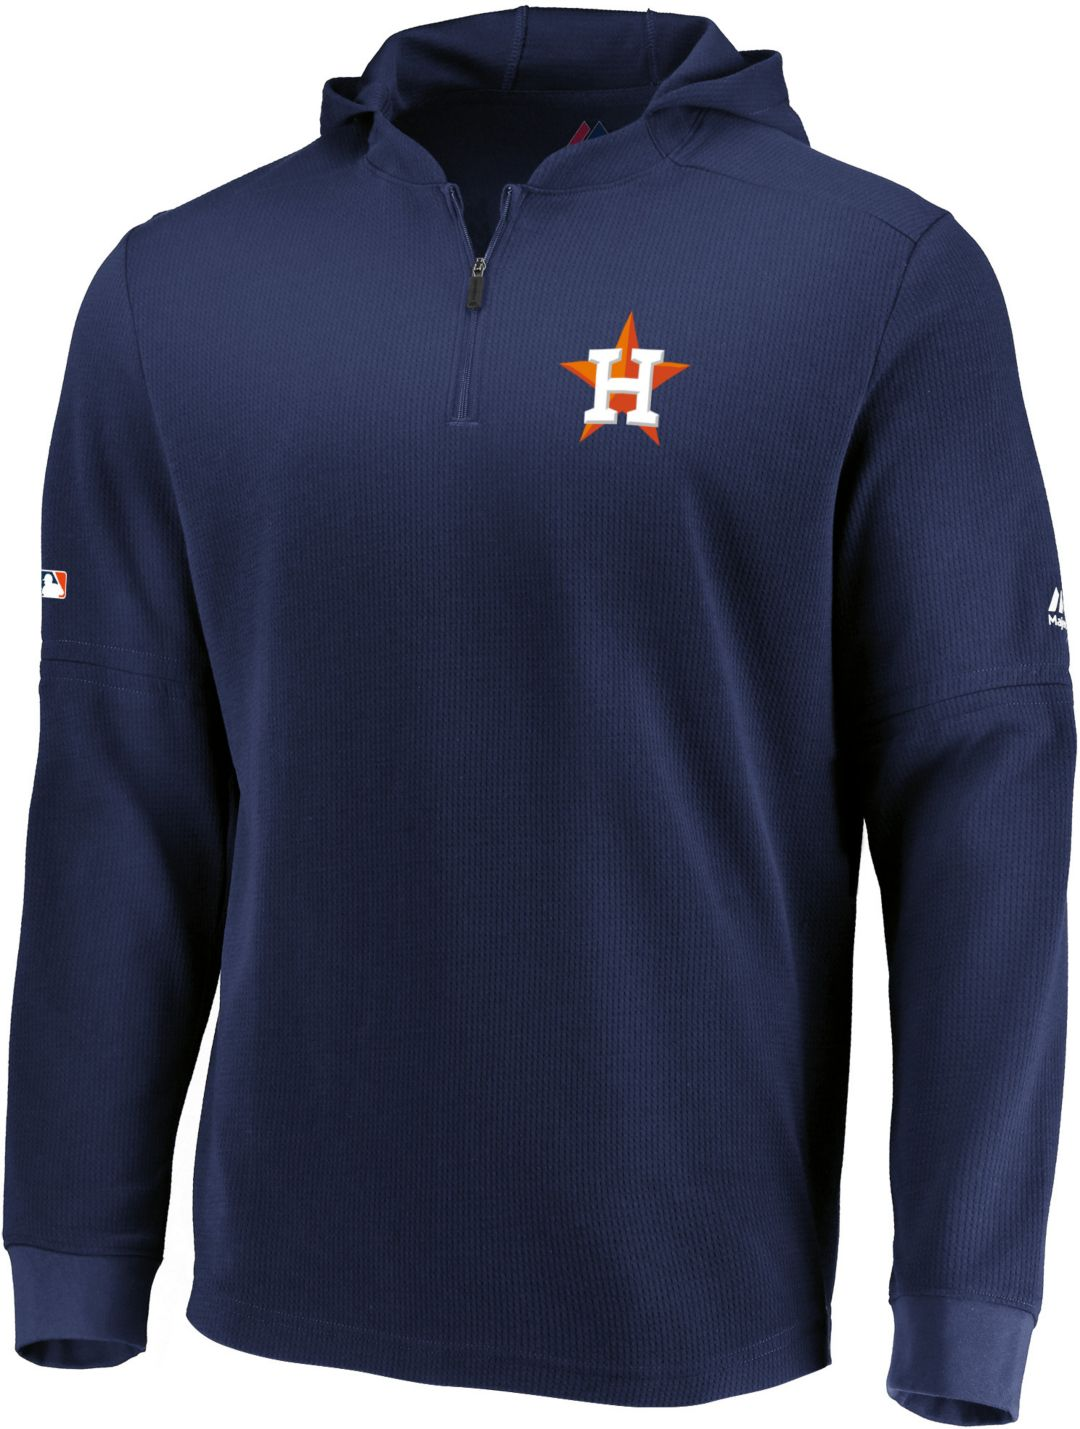 competitive price a8e2a 8c34b Majestic Men's Houston Astros Authentic Collection Batting Practice Waffle  Hooded Pullover